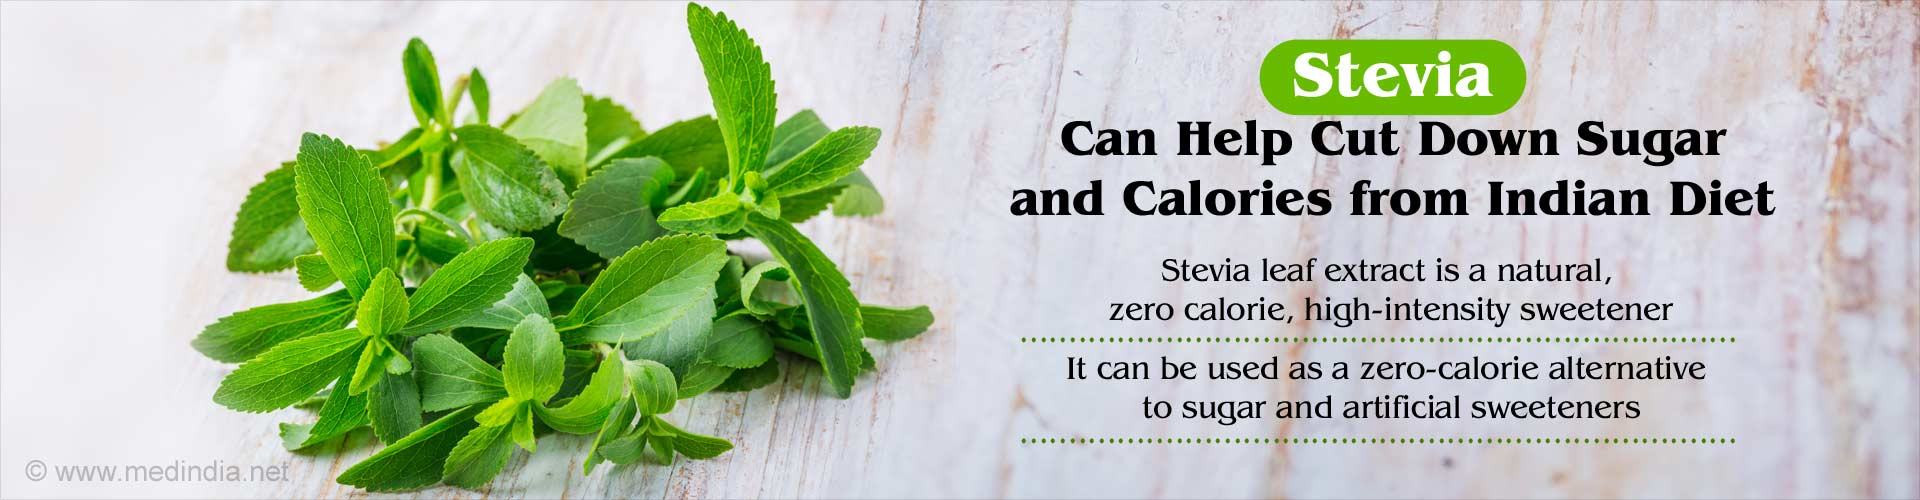 stevia can help cut down sugar and calories from indian diet